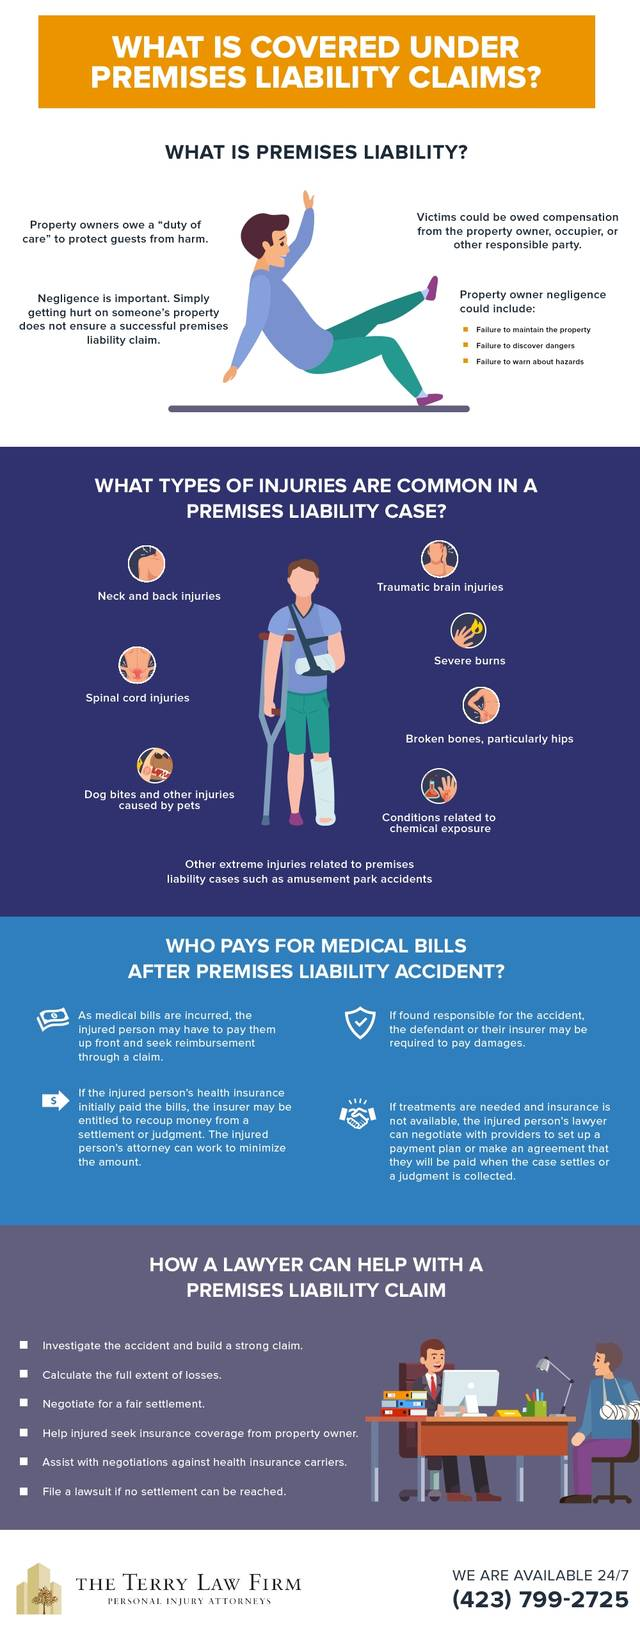 Terrylaw types injuries liability case infographic